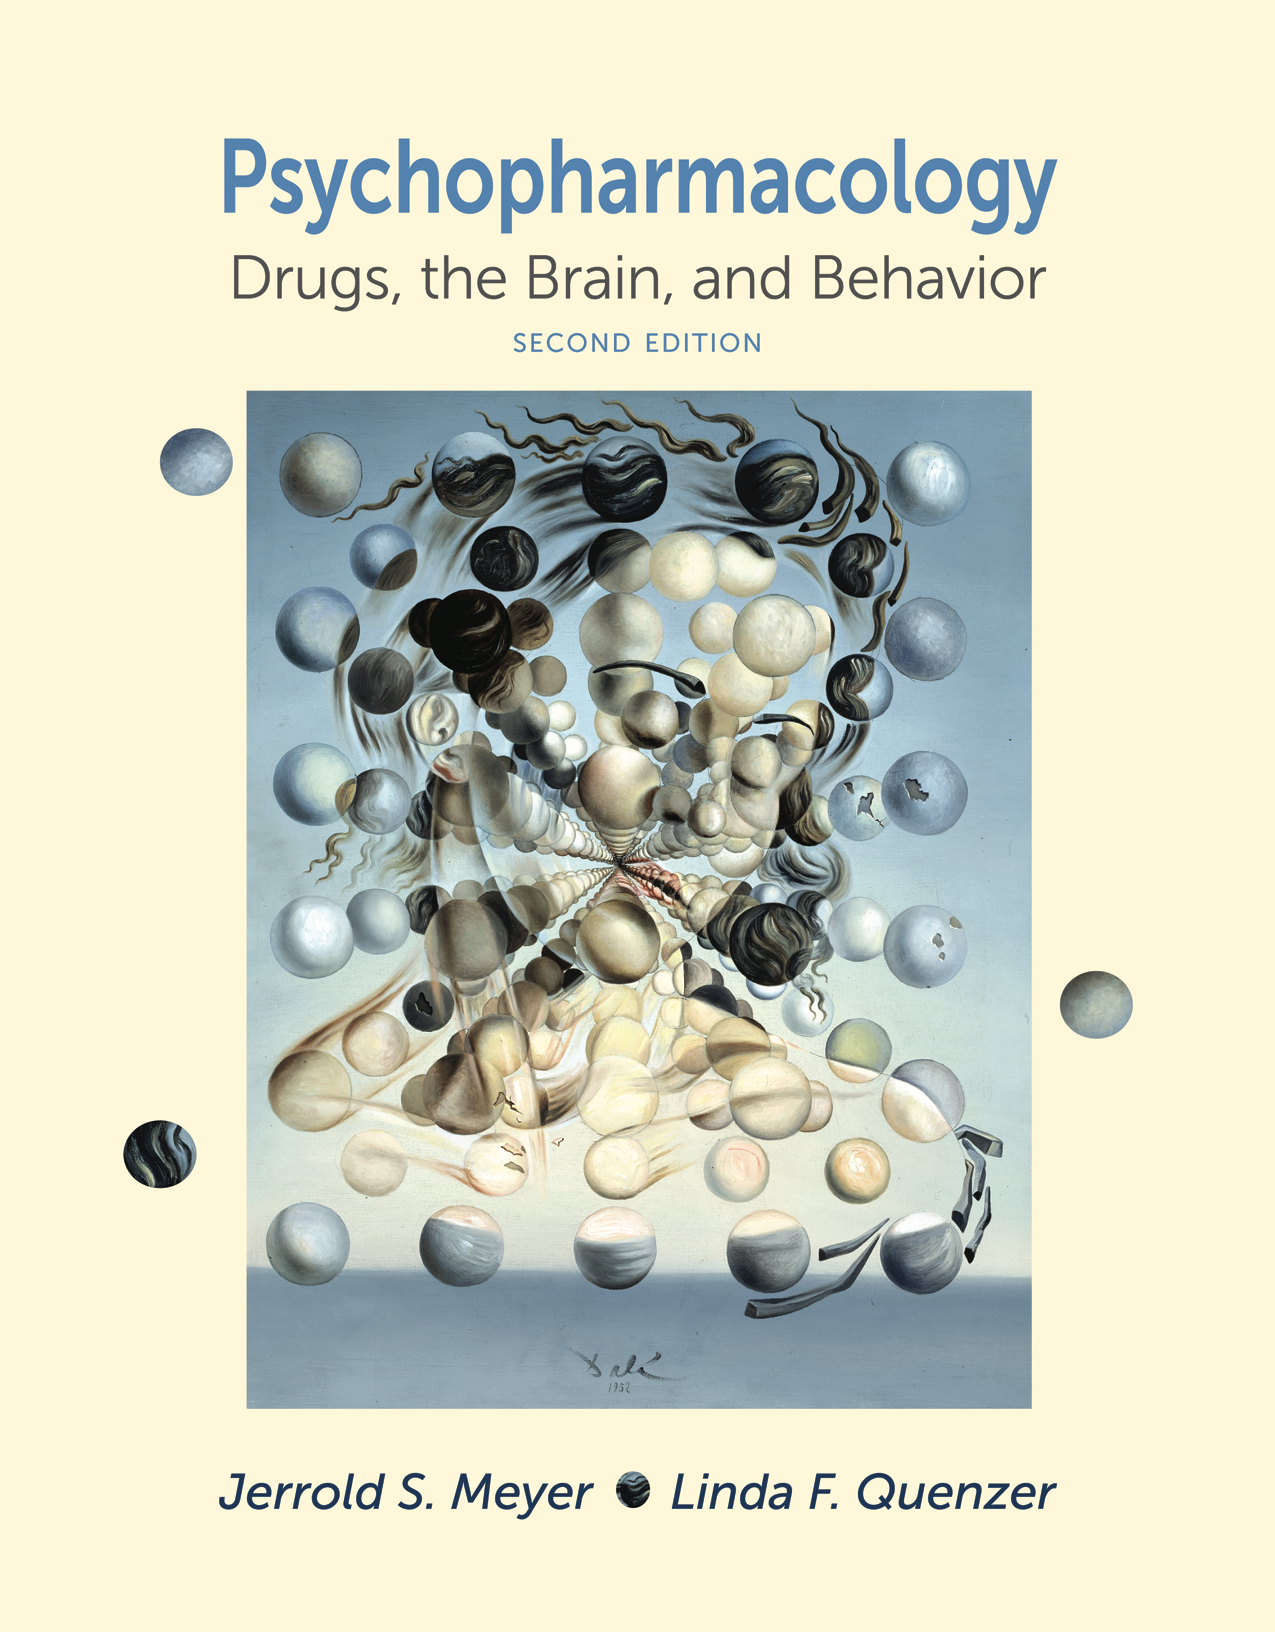 Psychopharmacology, 2e Instructor Resources